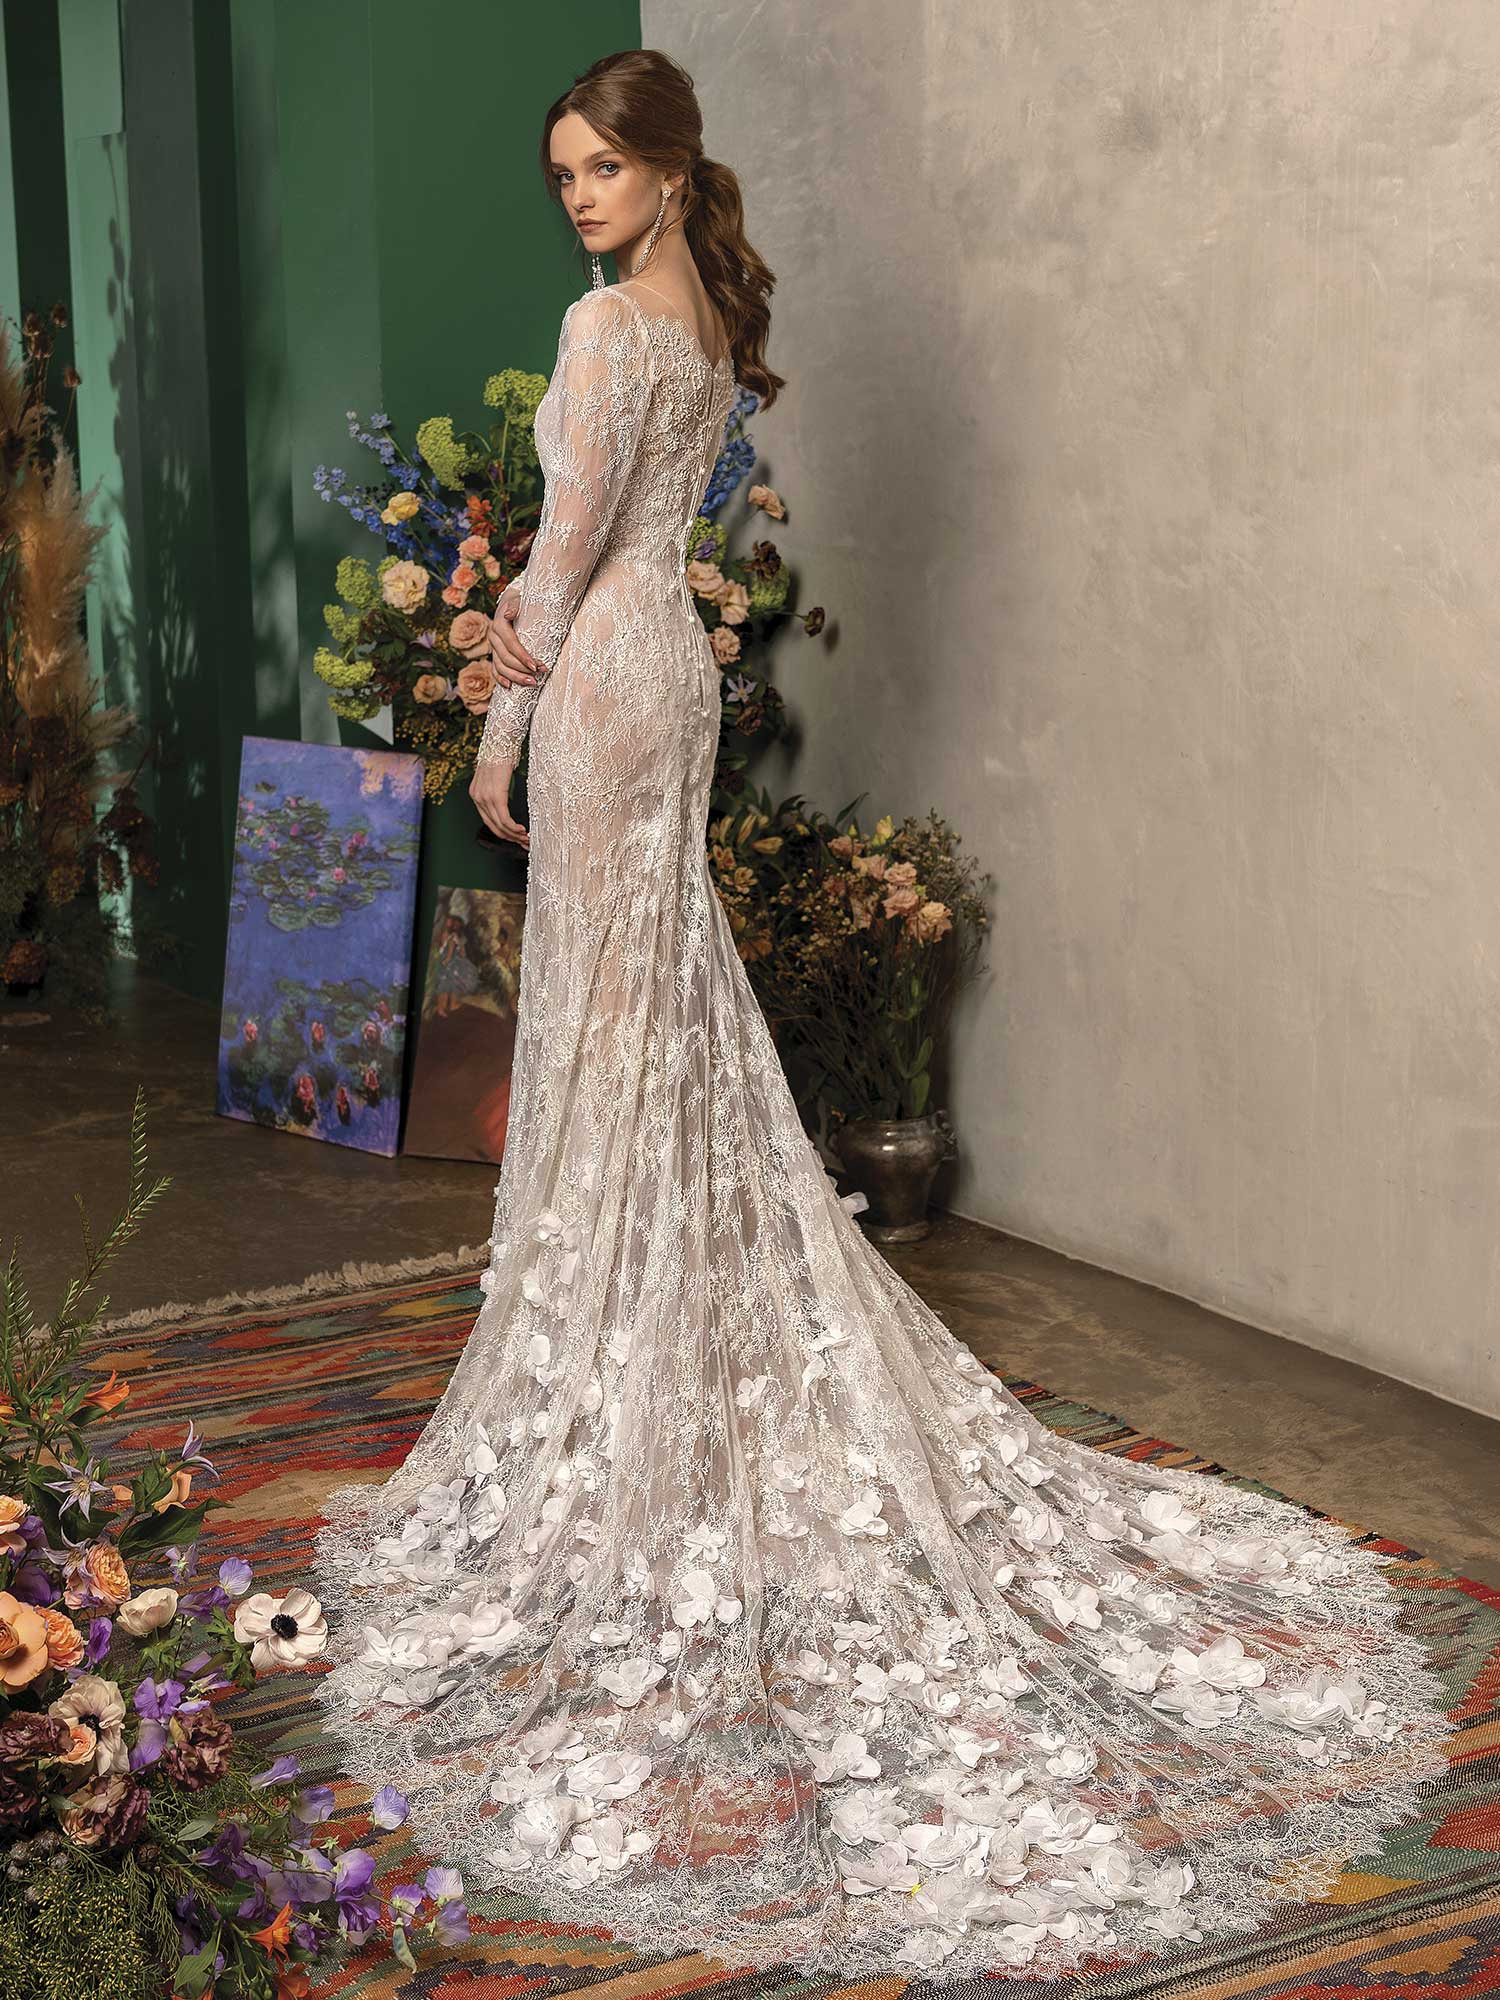 Style #2027L, Mermaid wedding dress with long sleeves, and floral train, available in ivory; 2027-1, available in nude and ivory